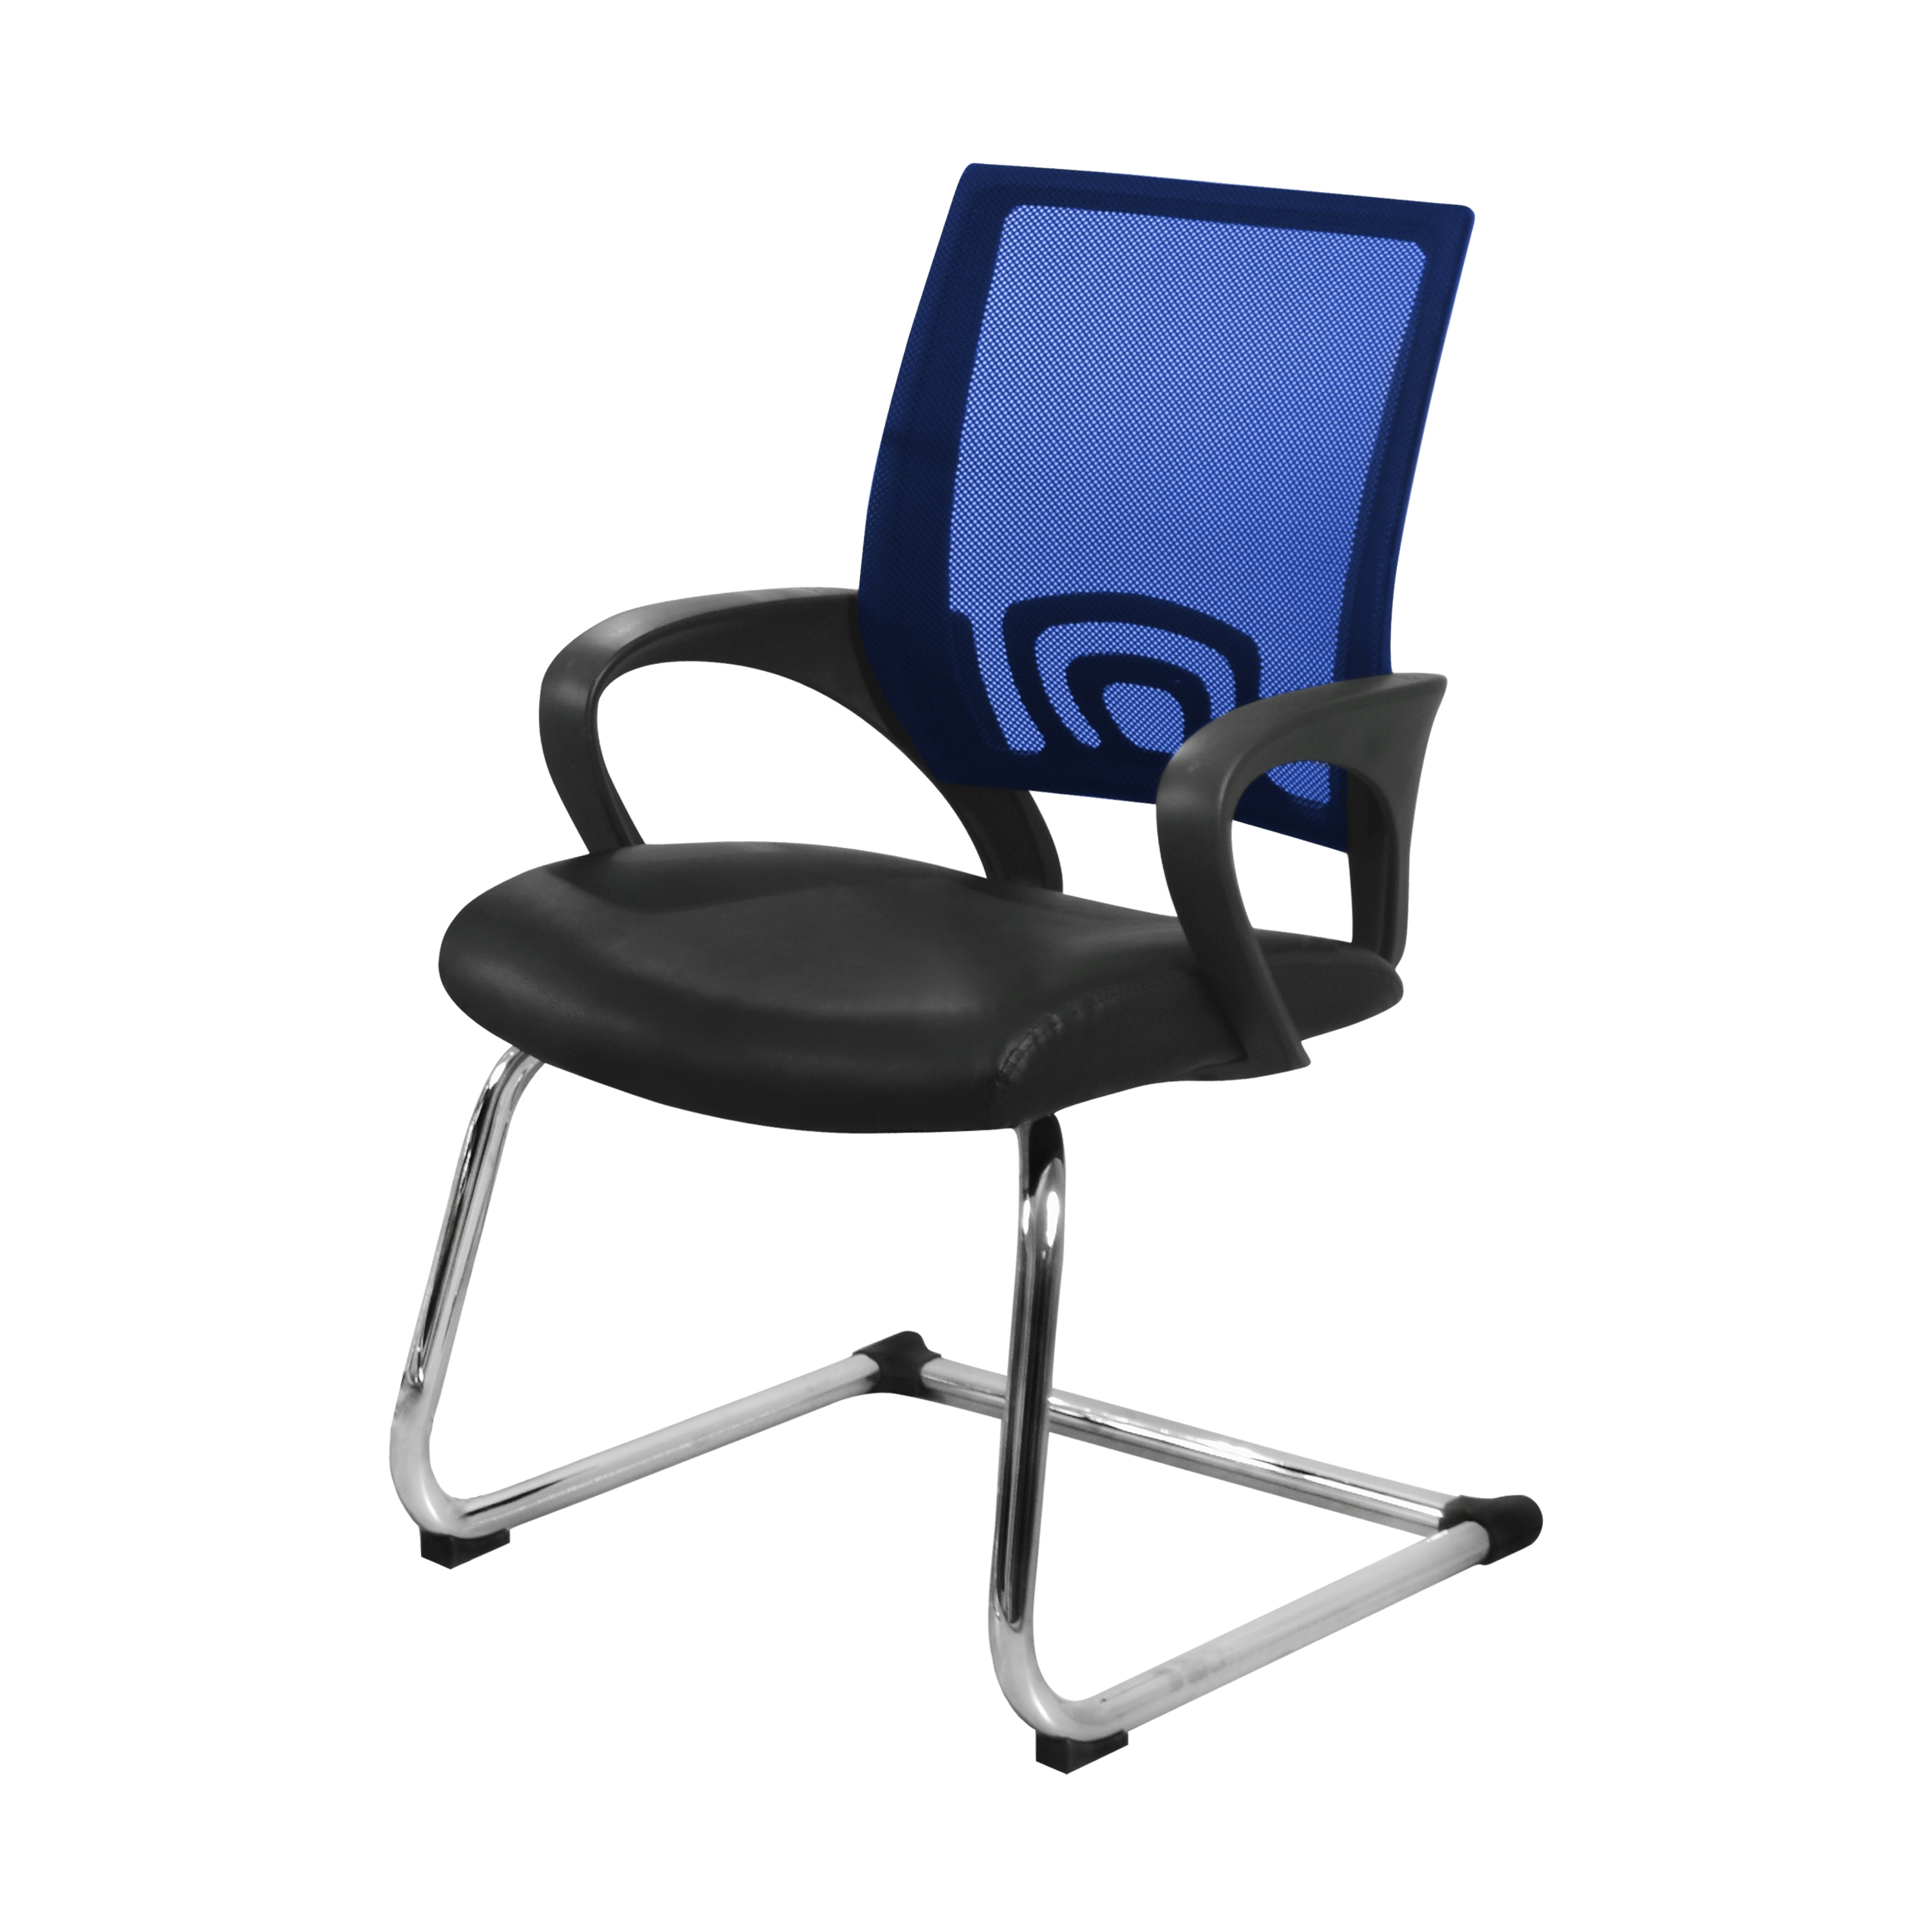 Preferred Executive Office Chairs Without Wheels With Regard To Extraordinary Swivel Office Chair For Your Working Mood Booster (View 17 of 20)